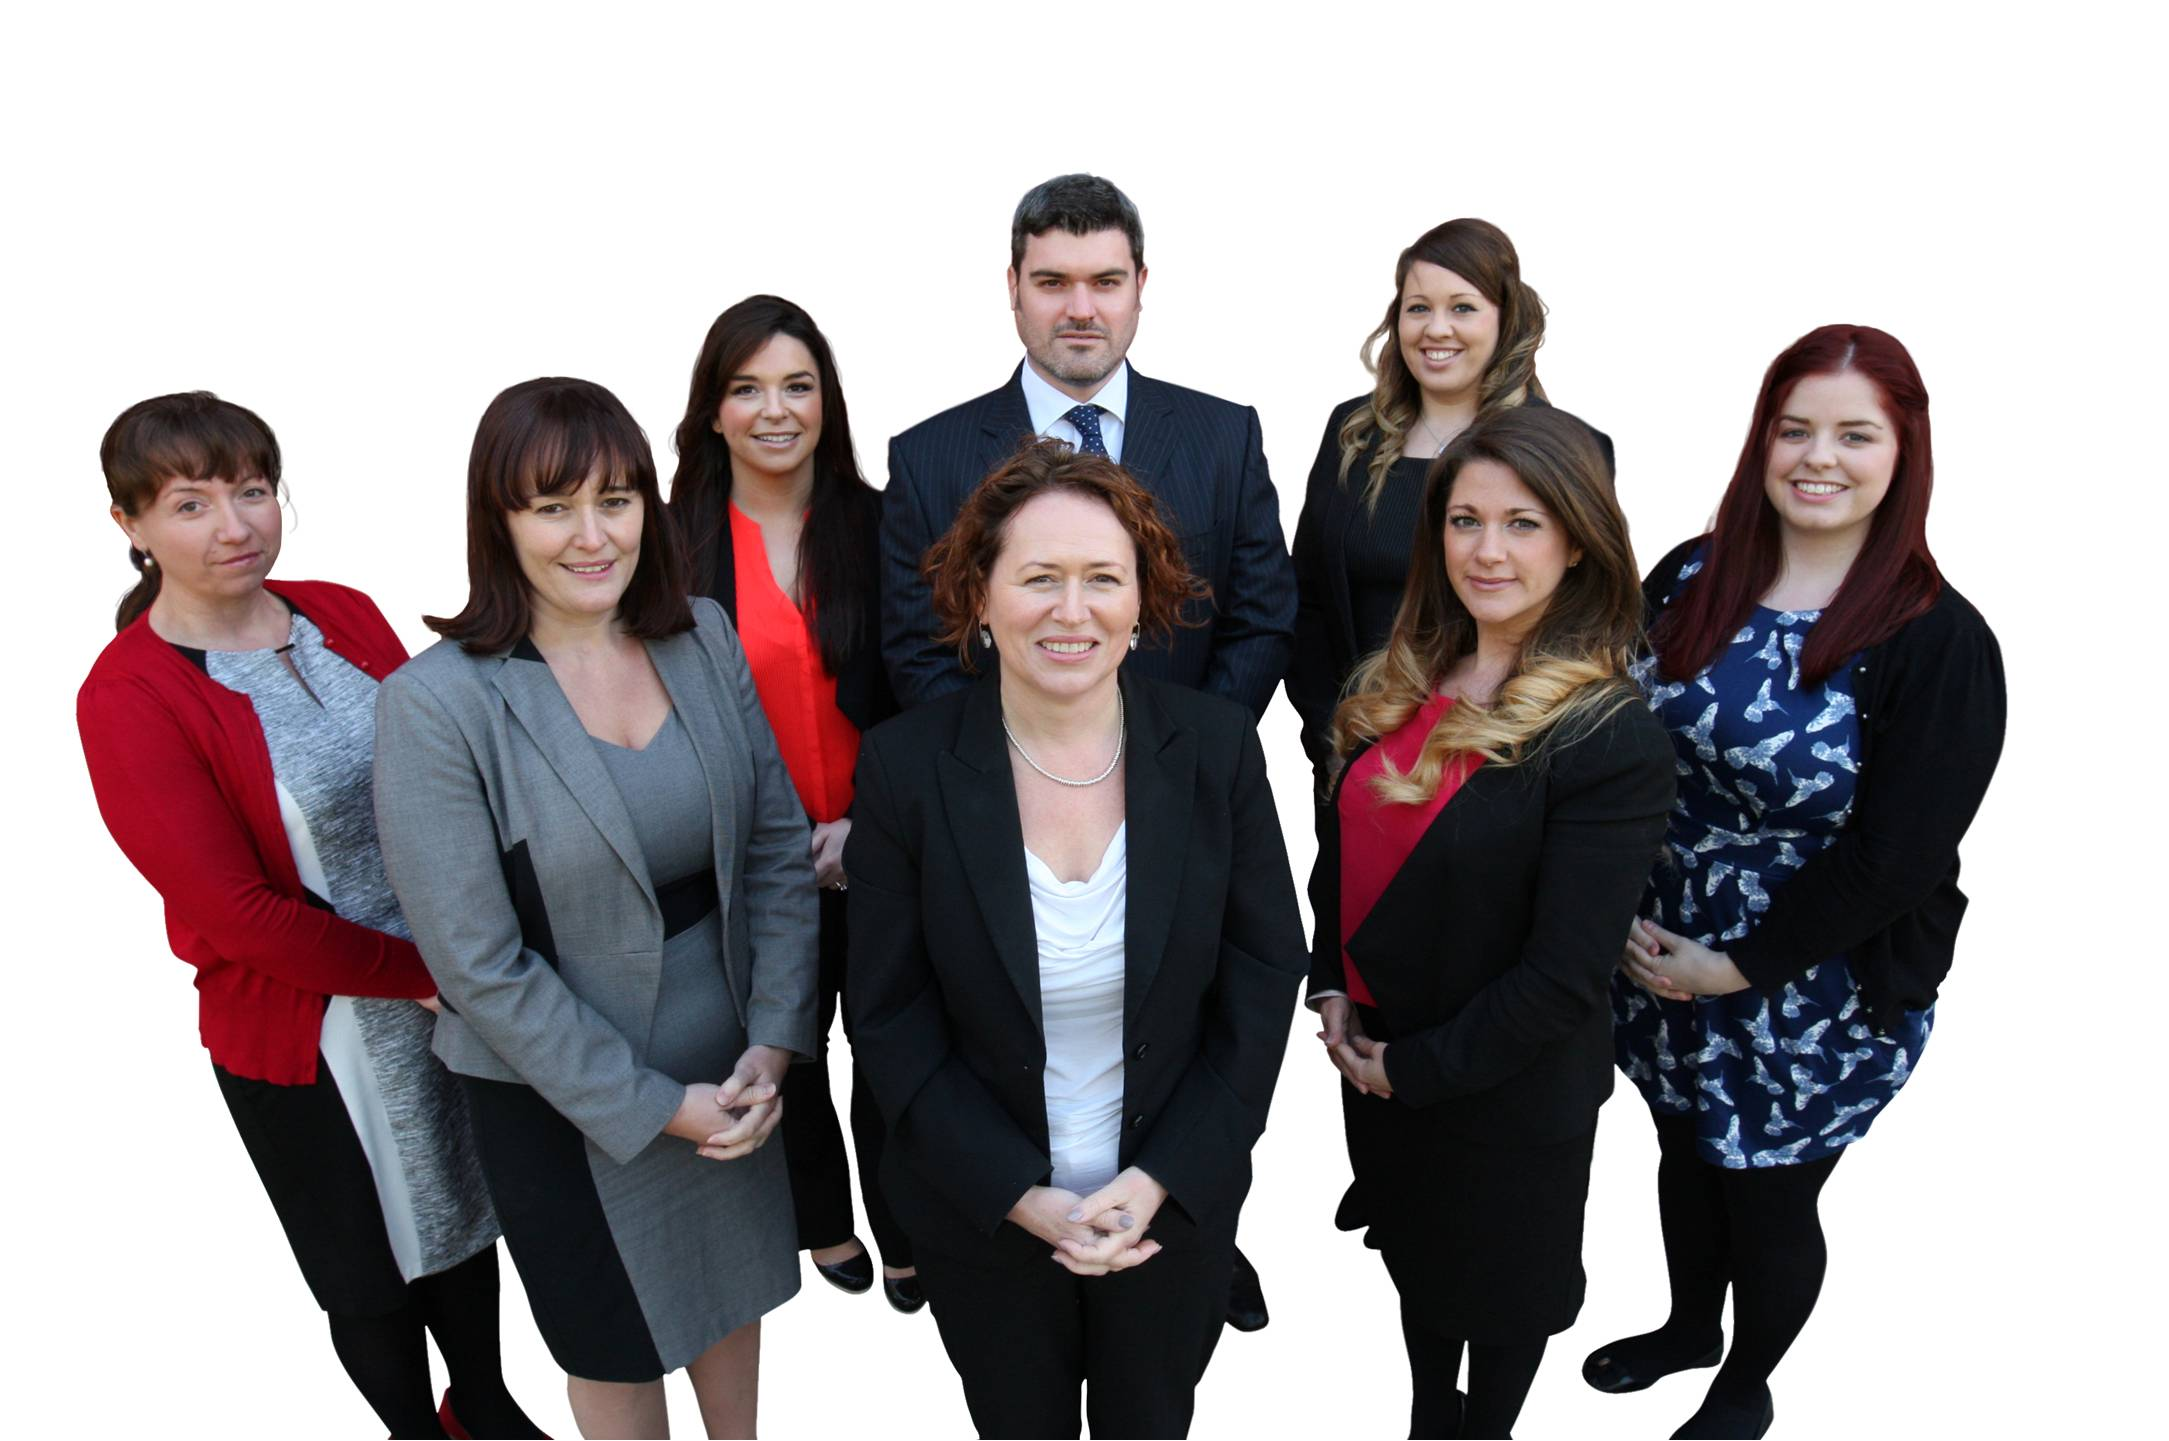 Our Eye Treatment expert team. We deal with medical negligence claims arising from negligent eye treatment.